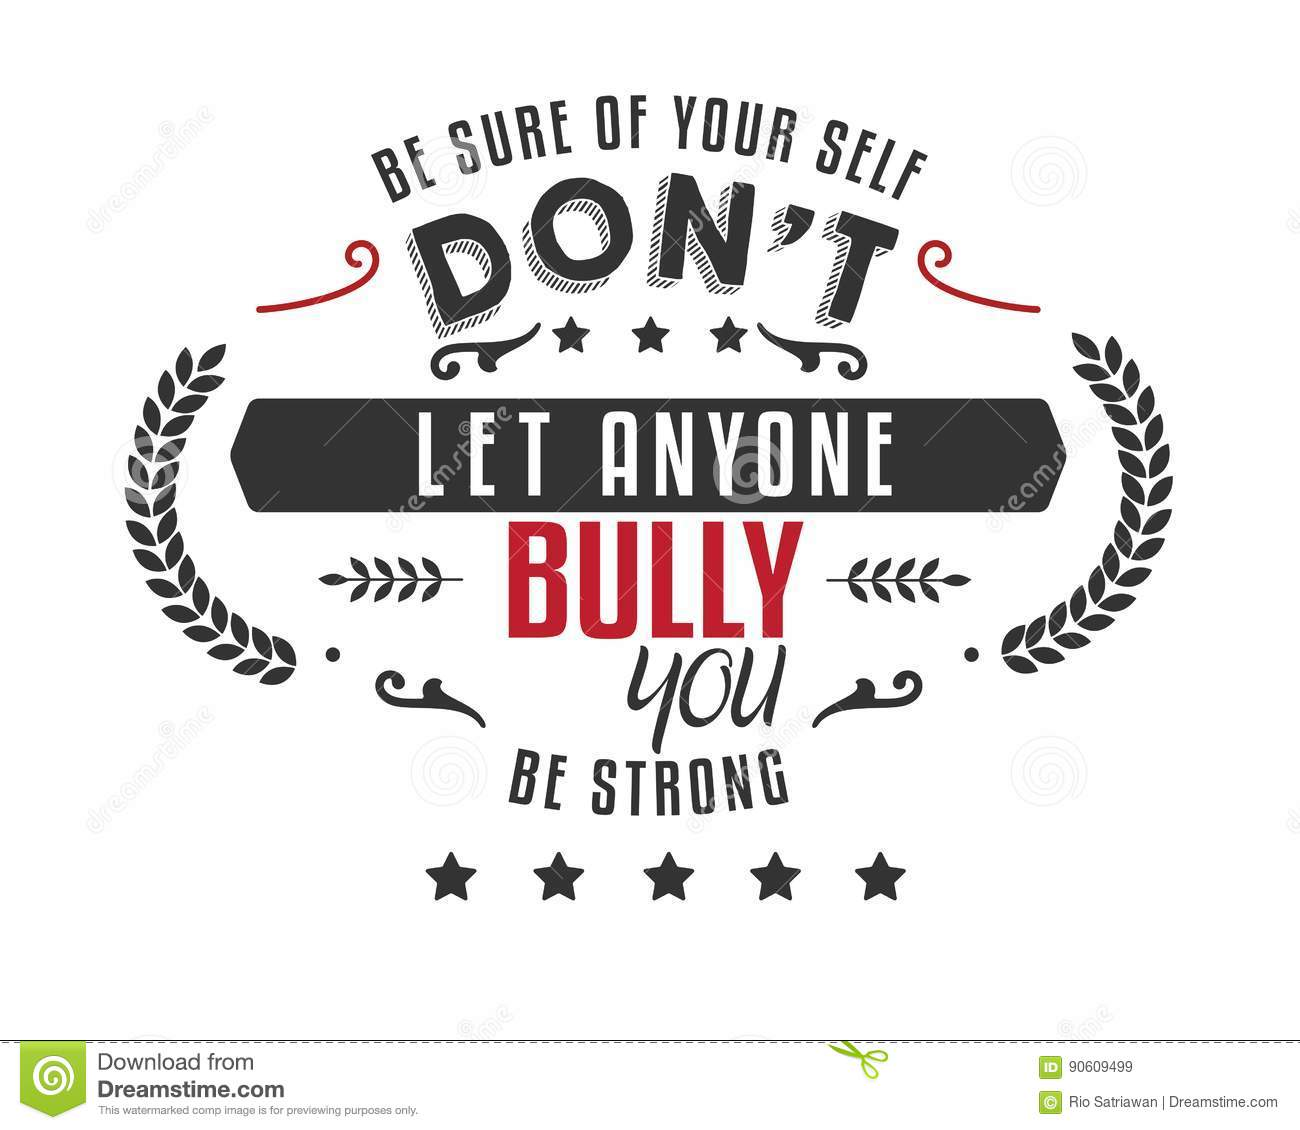 Bully Quotes Classy Best Motivational Quotes Bully Quotes Motivational Quotes Stock